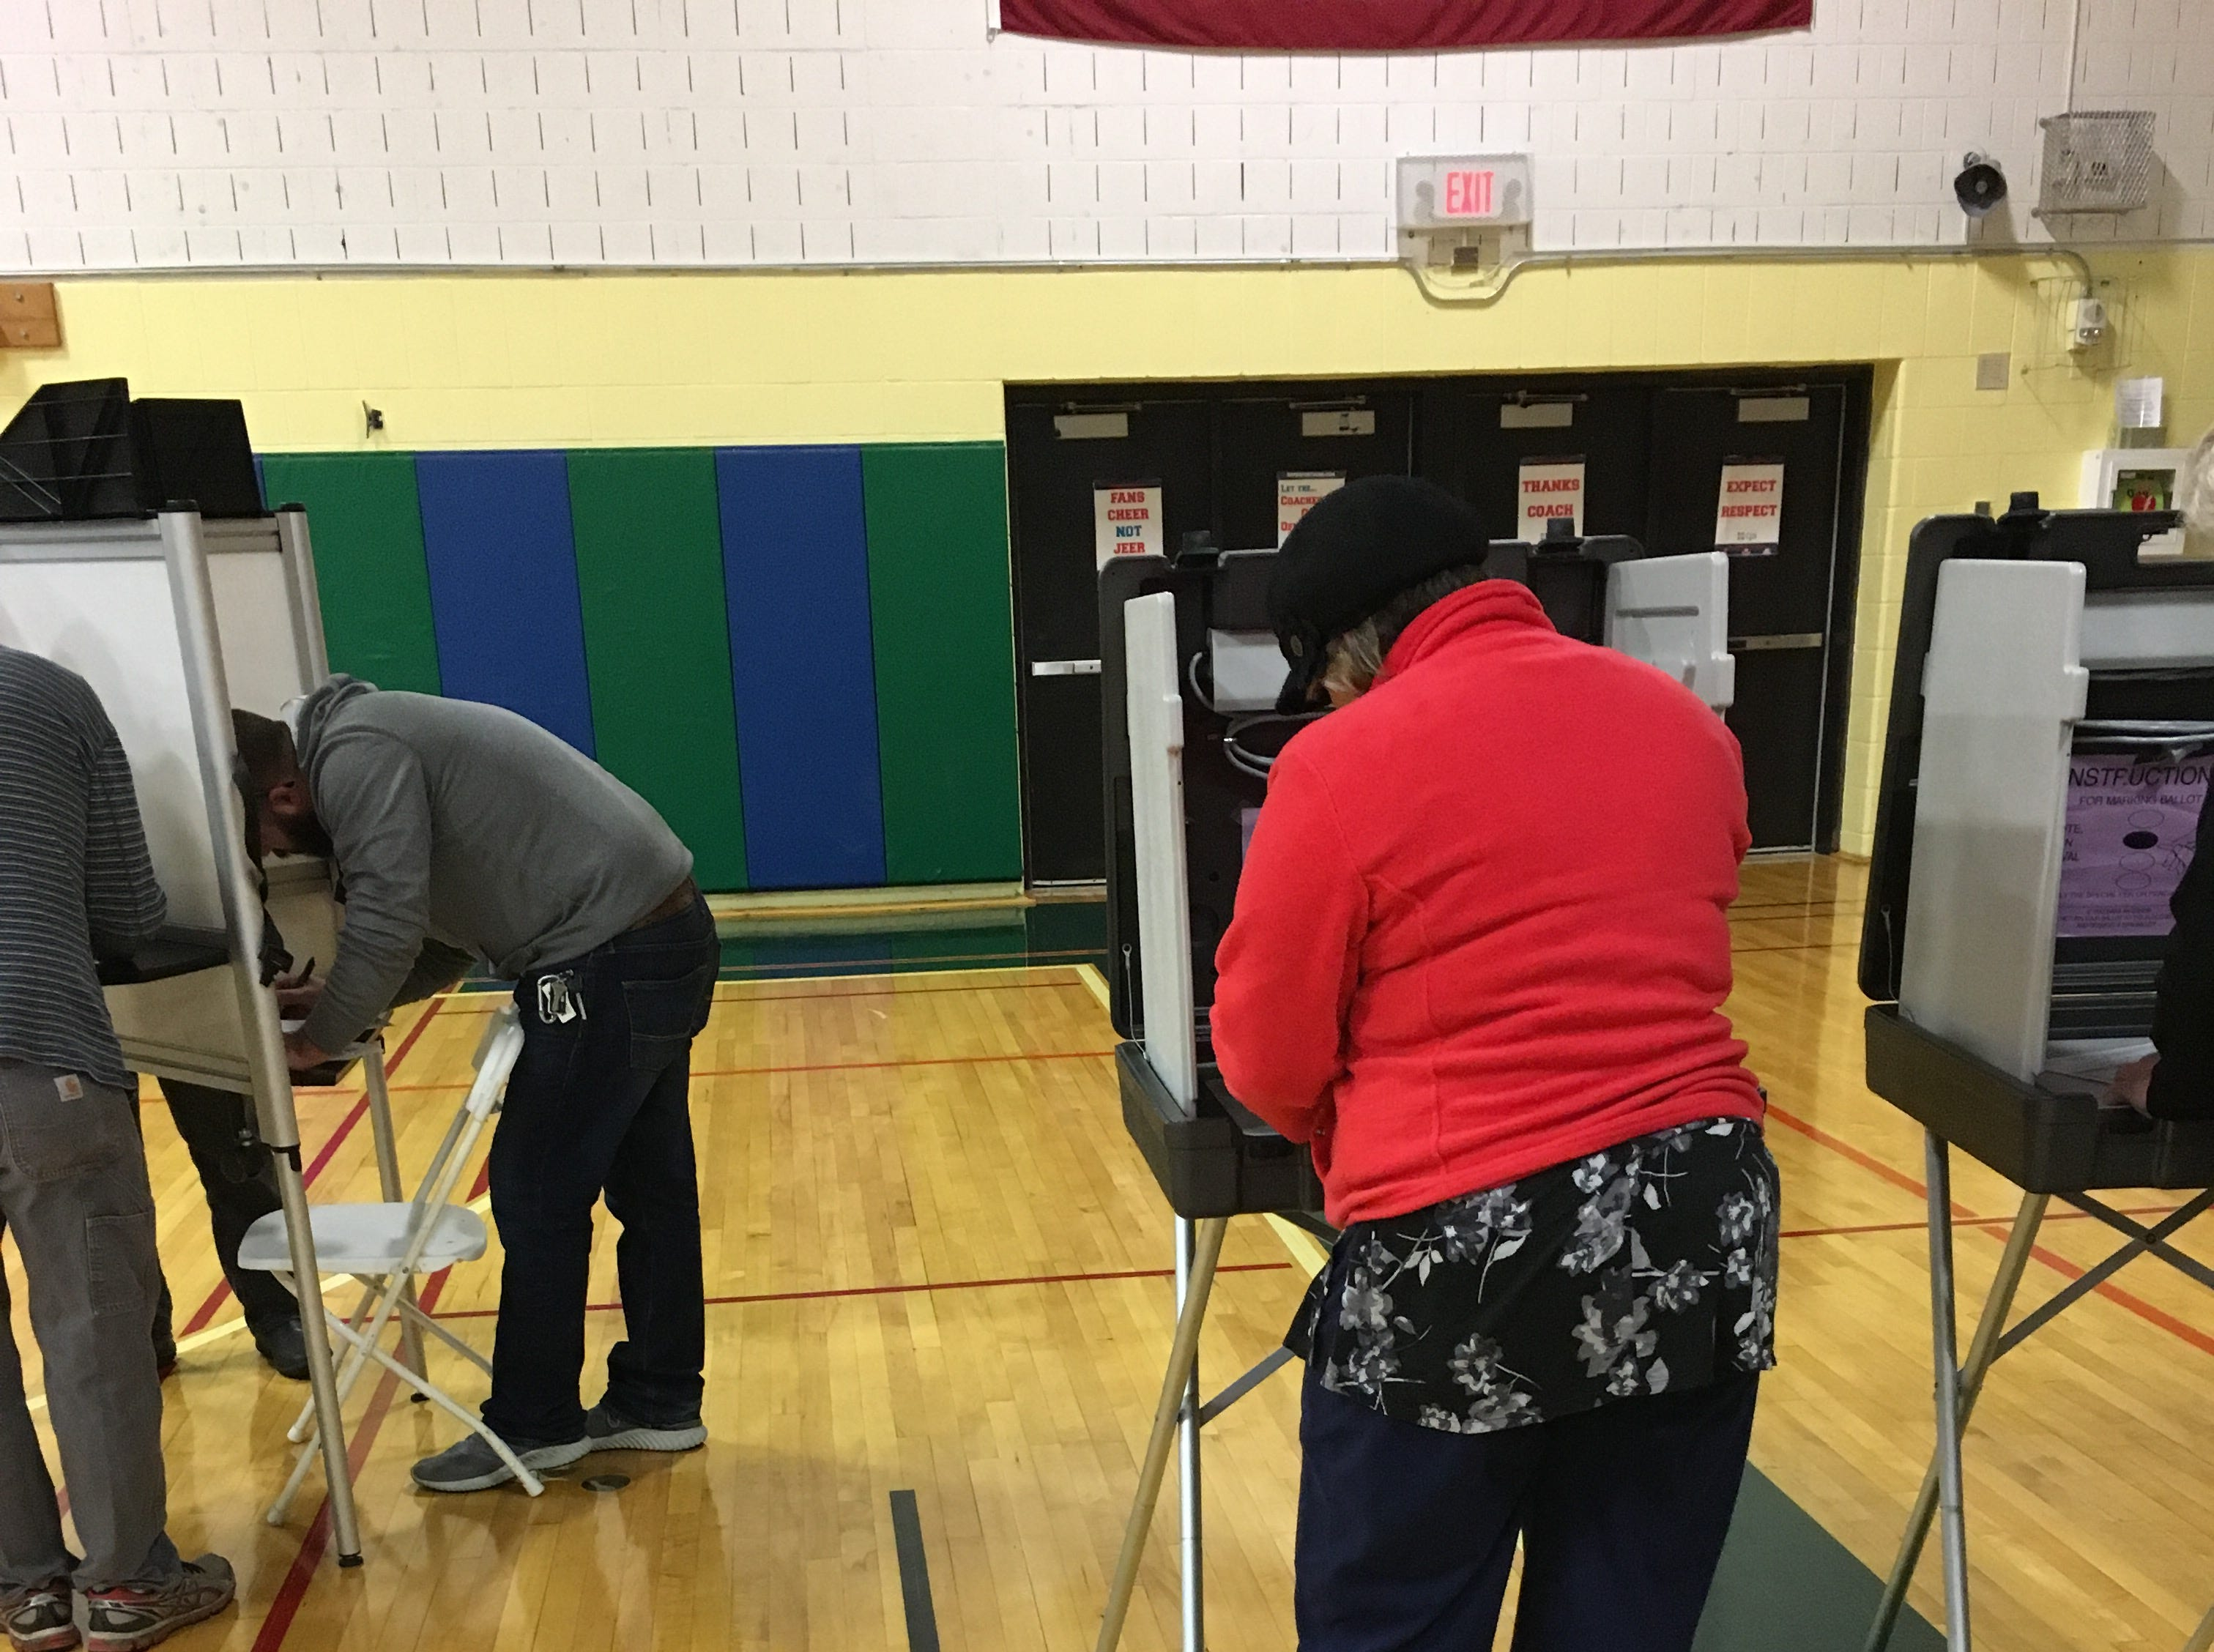 Resident casts their ballot at the polling location at Colchester High School in Colchester, Vermont, on Tuesday, Nov. 6, 2018.